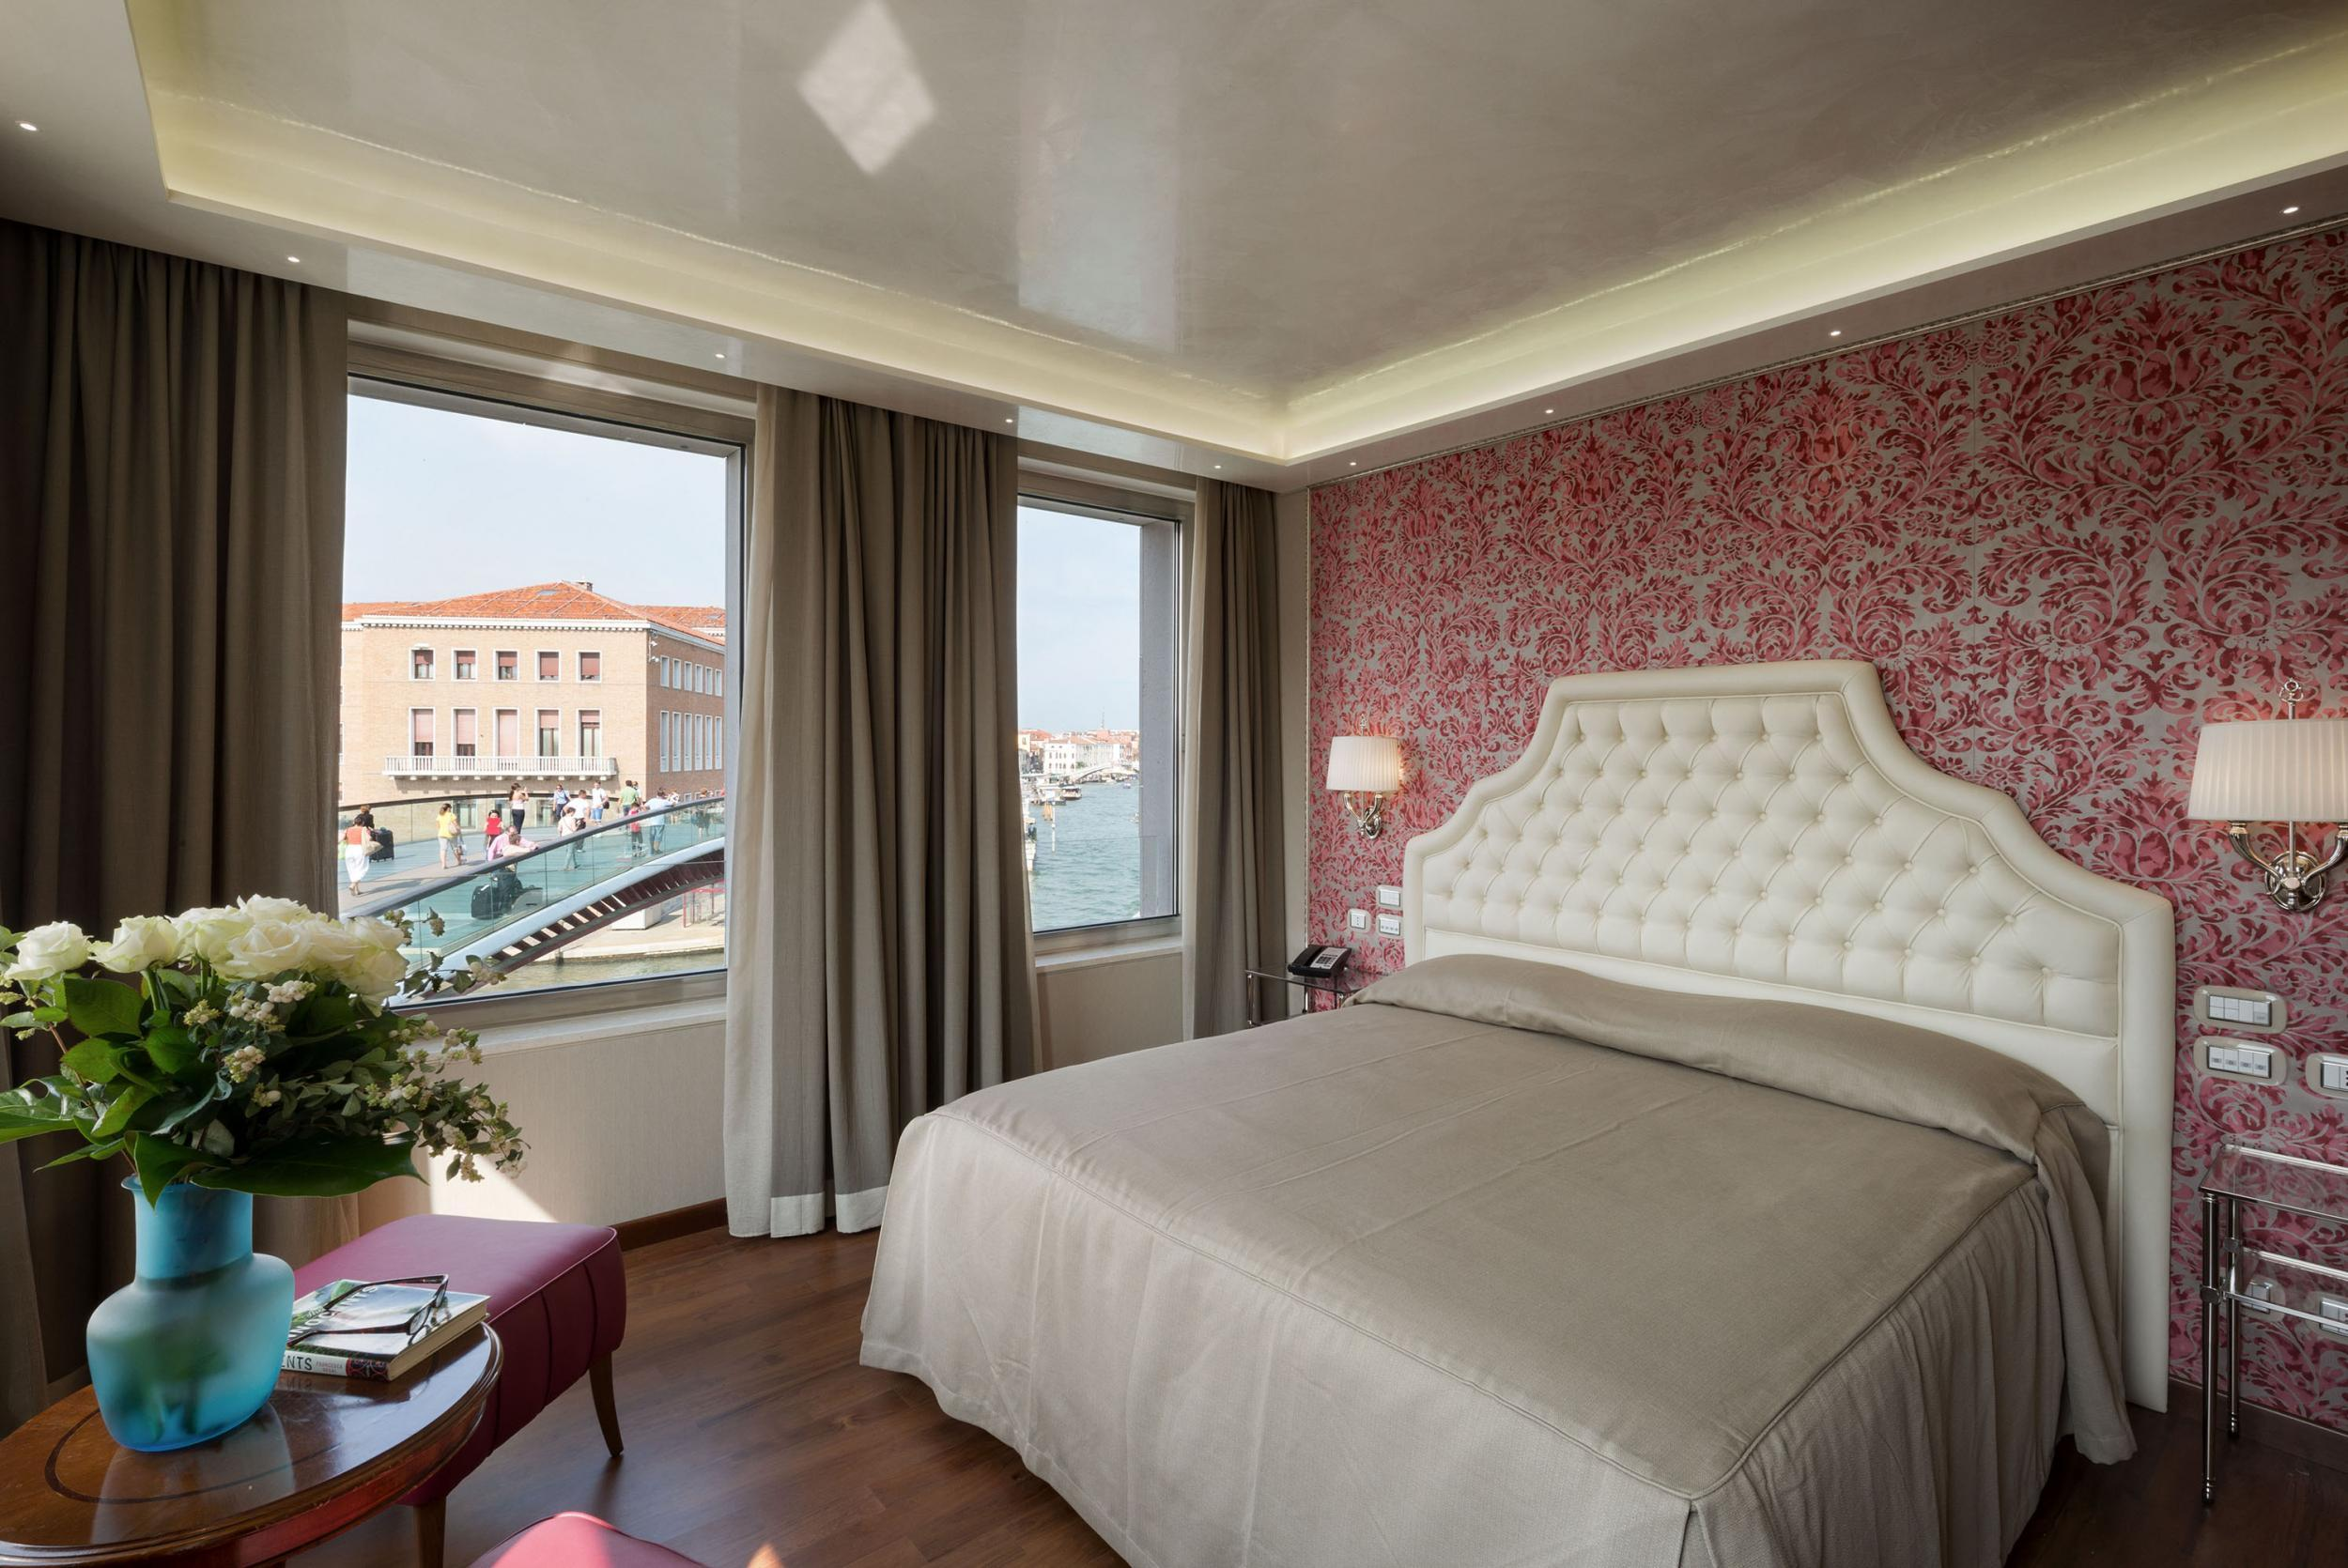 Venice Hotels 11 Best For Location And Value Of Money The Independent